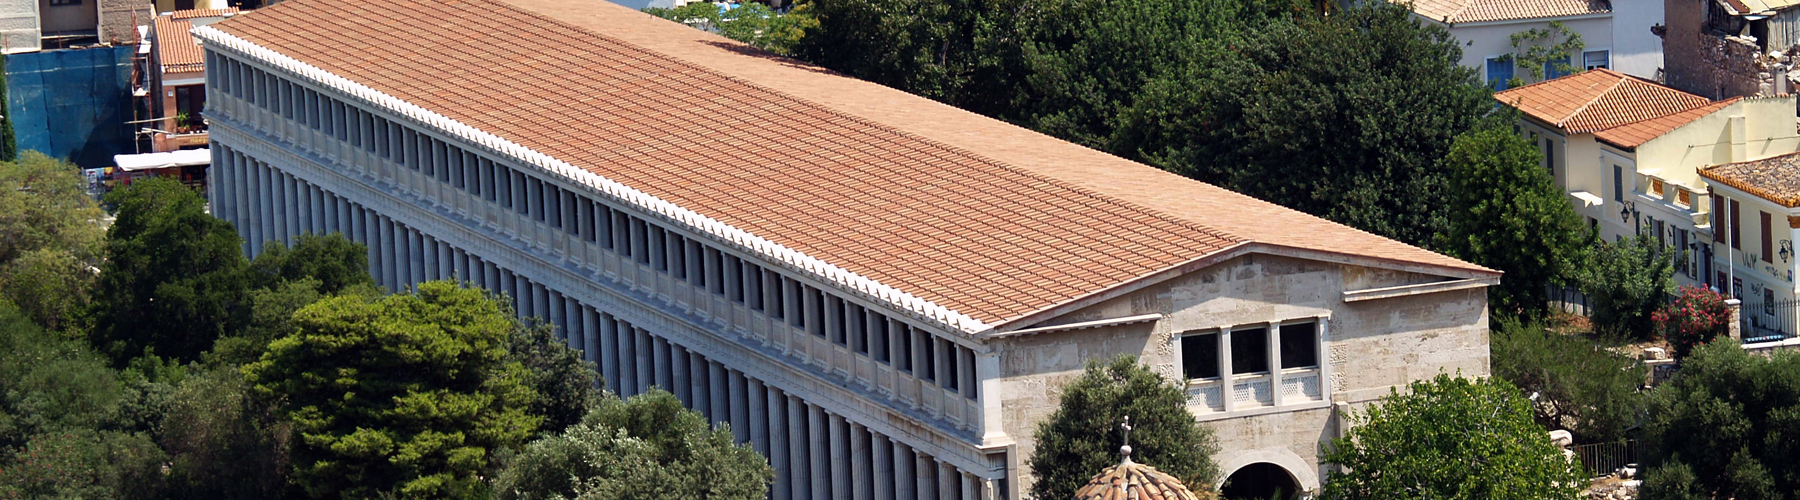 Athens – Hostels close to Stoa of Attalos. Maps for Athens, Photos and Reviews for each hostel in Athens.